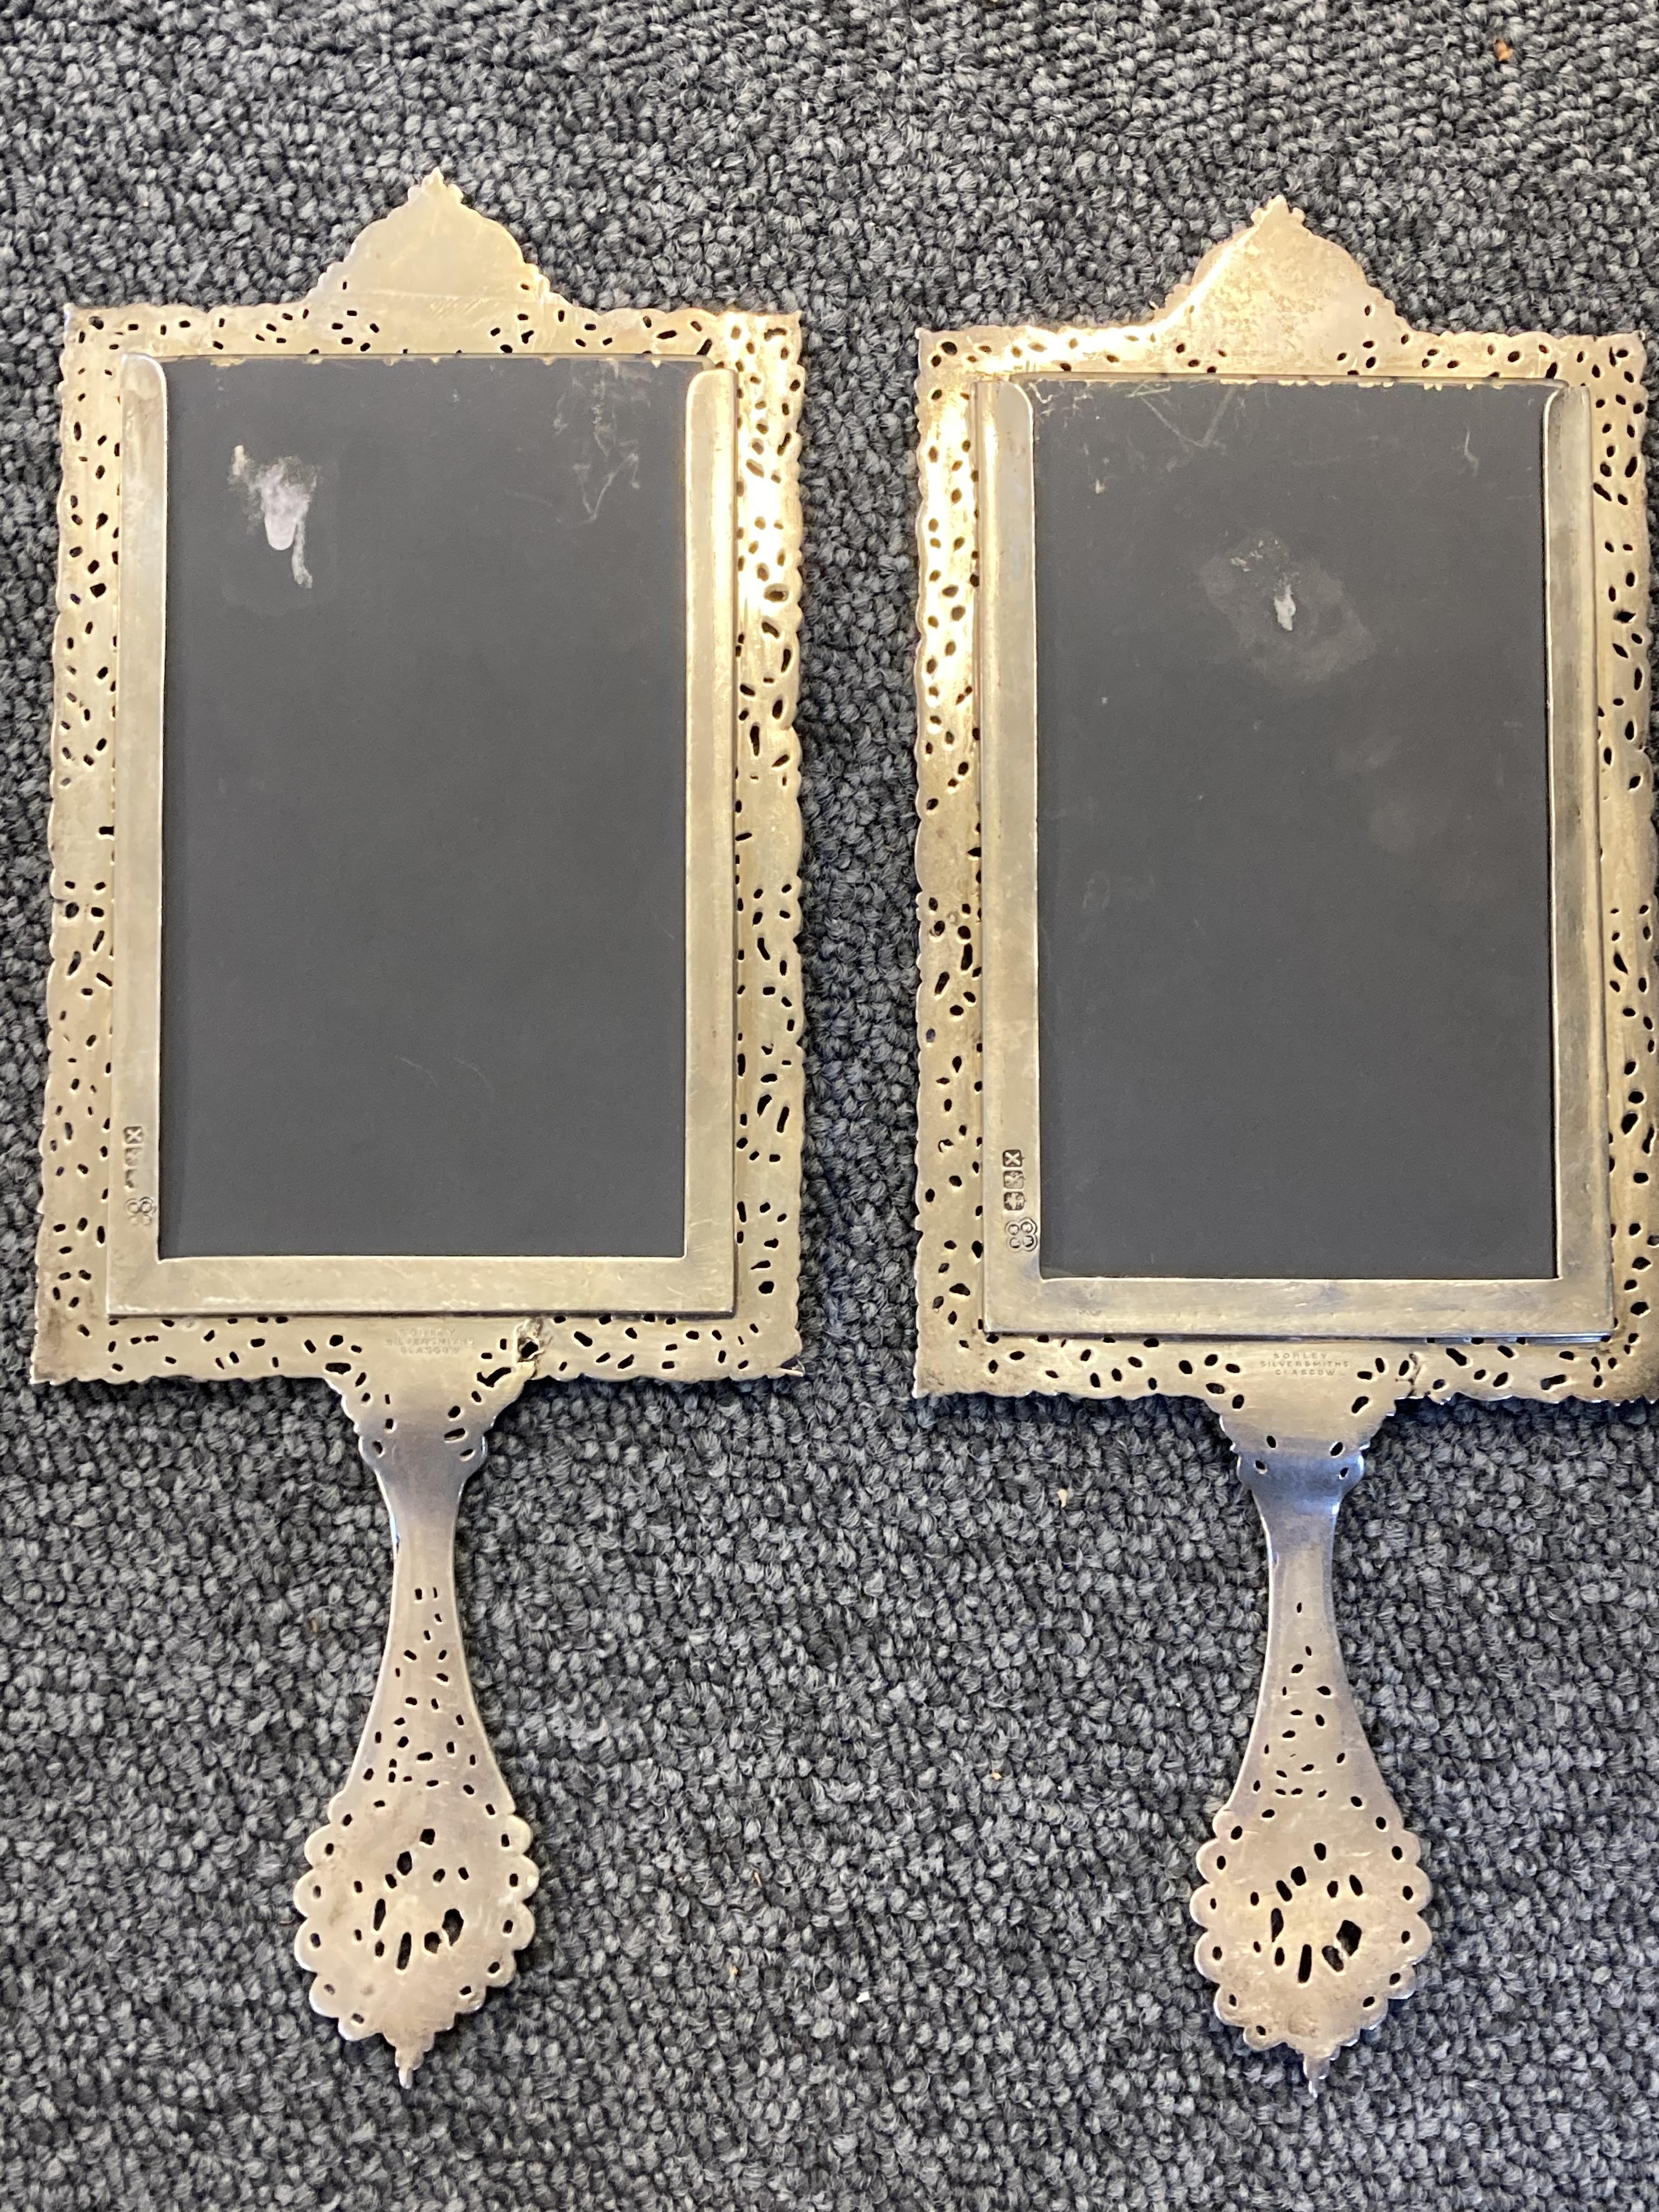 * Mirrors. Pair of Scottish silver hand mirrors by R & W Sorley, Glasgow, 1894 - Image 3 of 10